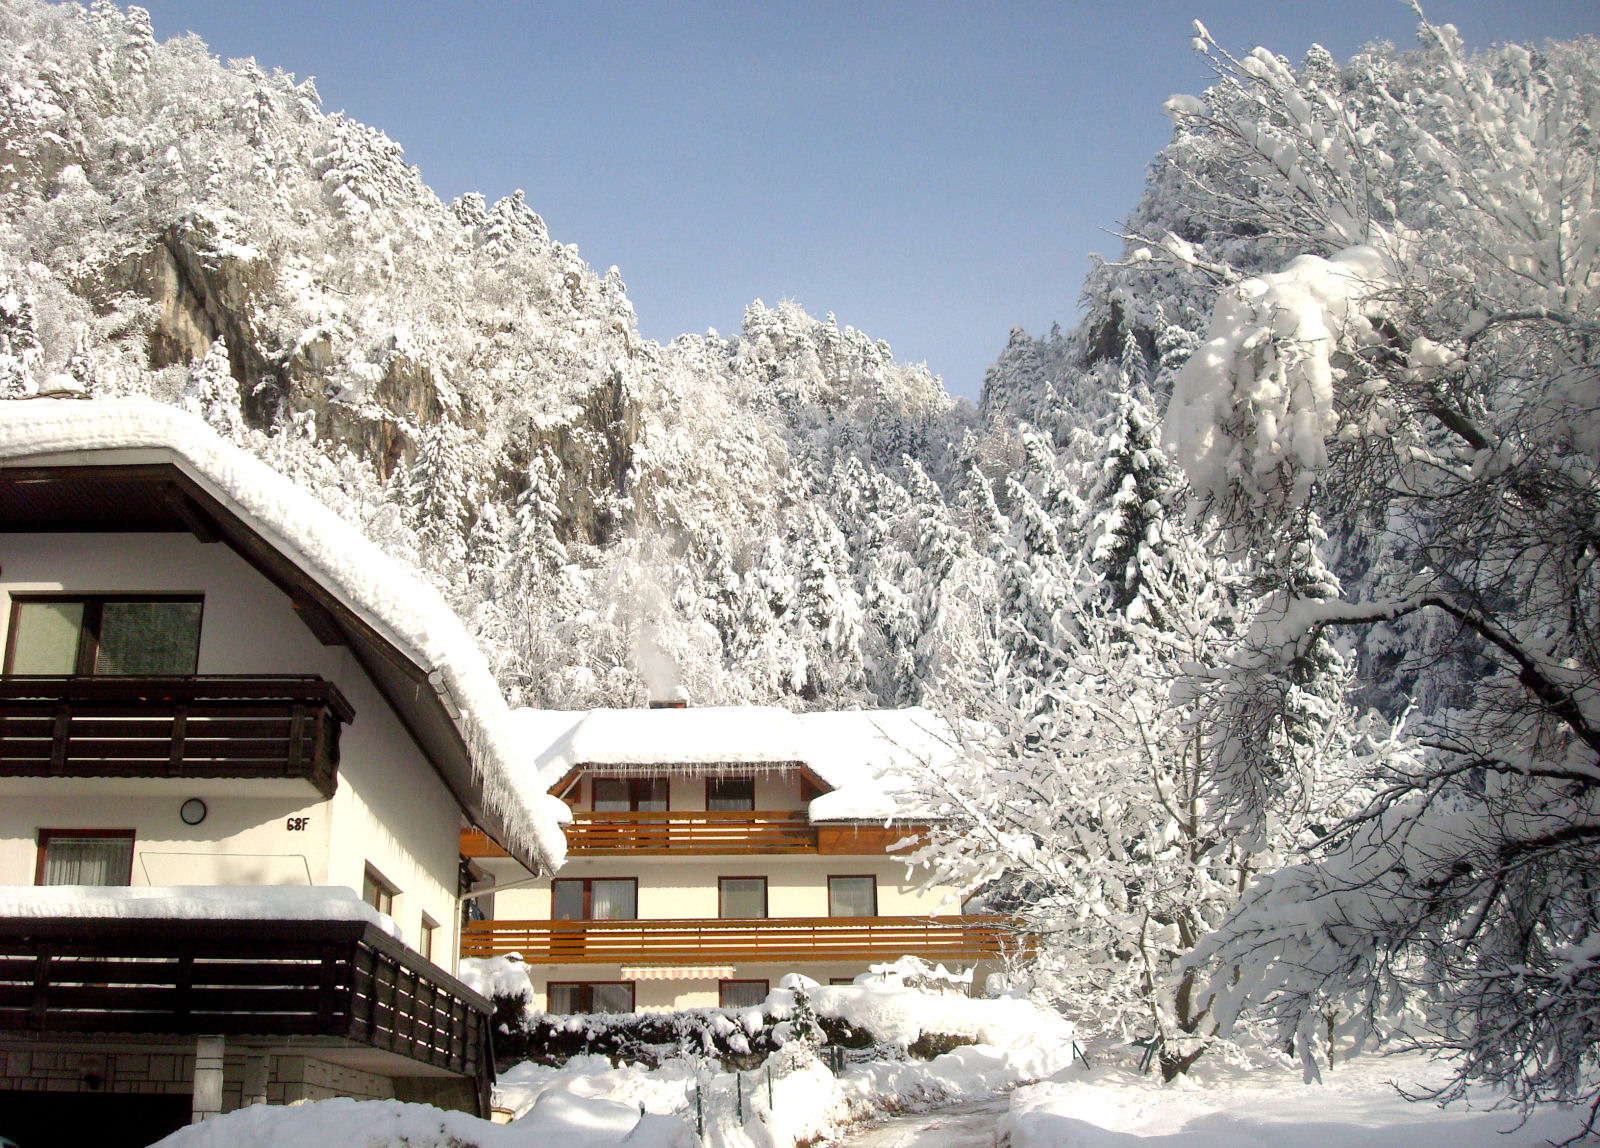 Fine Stay apartment in winter with lots of snow